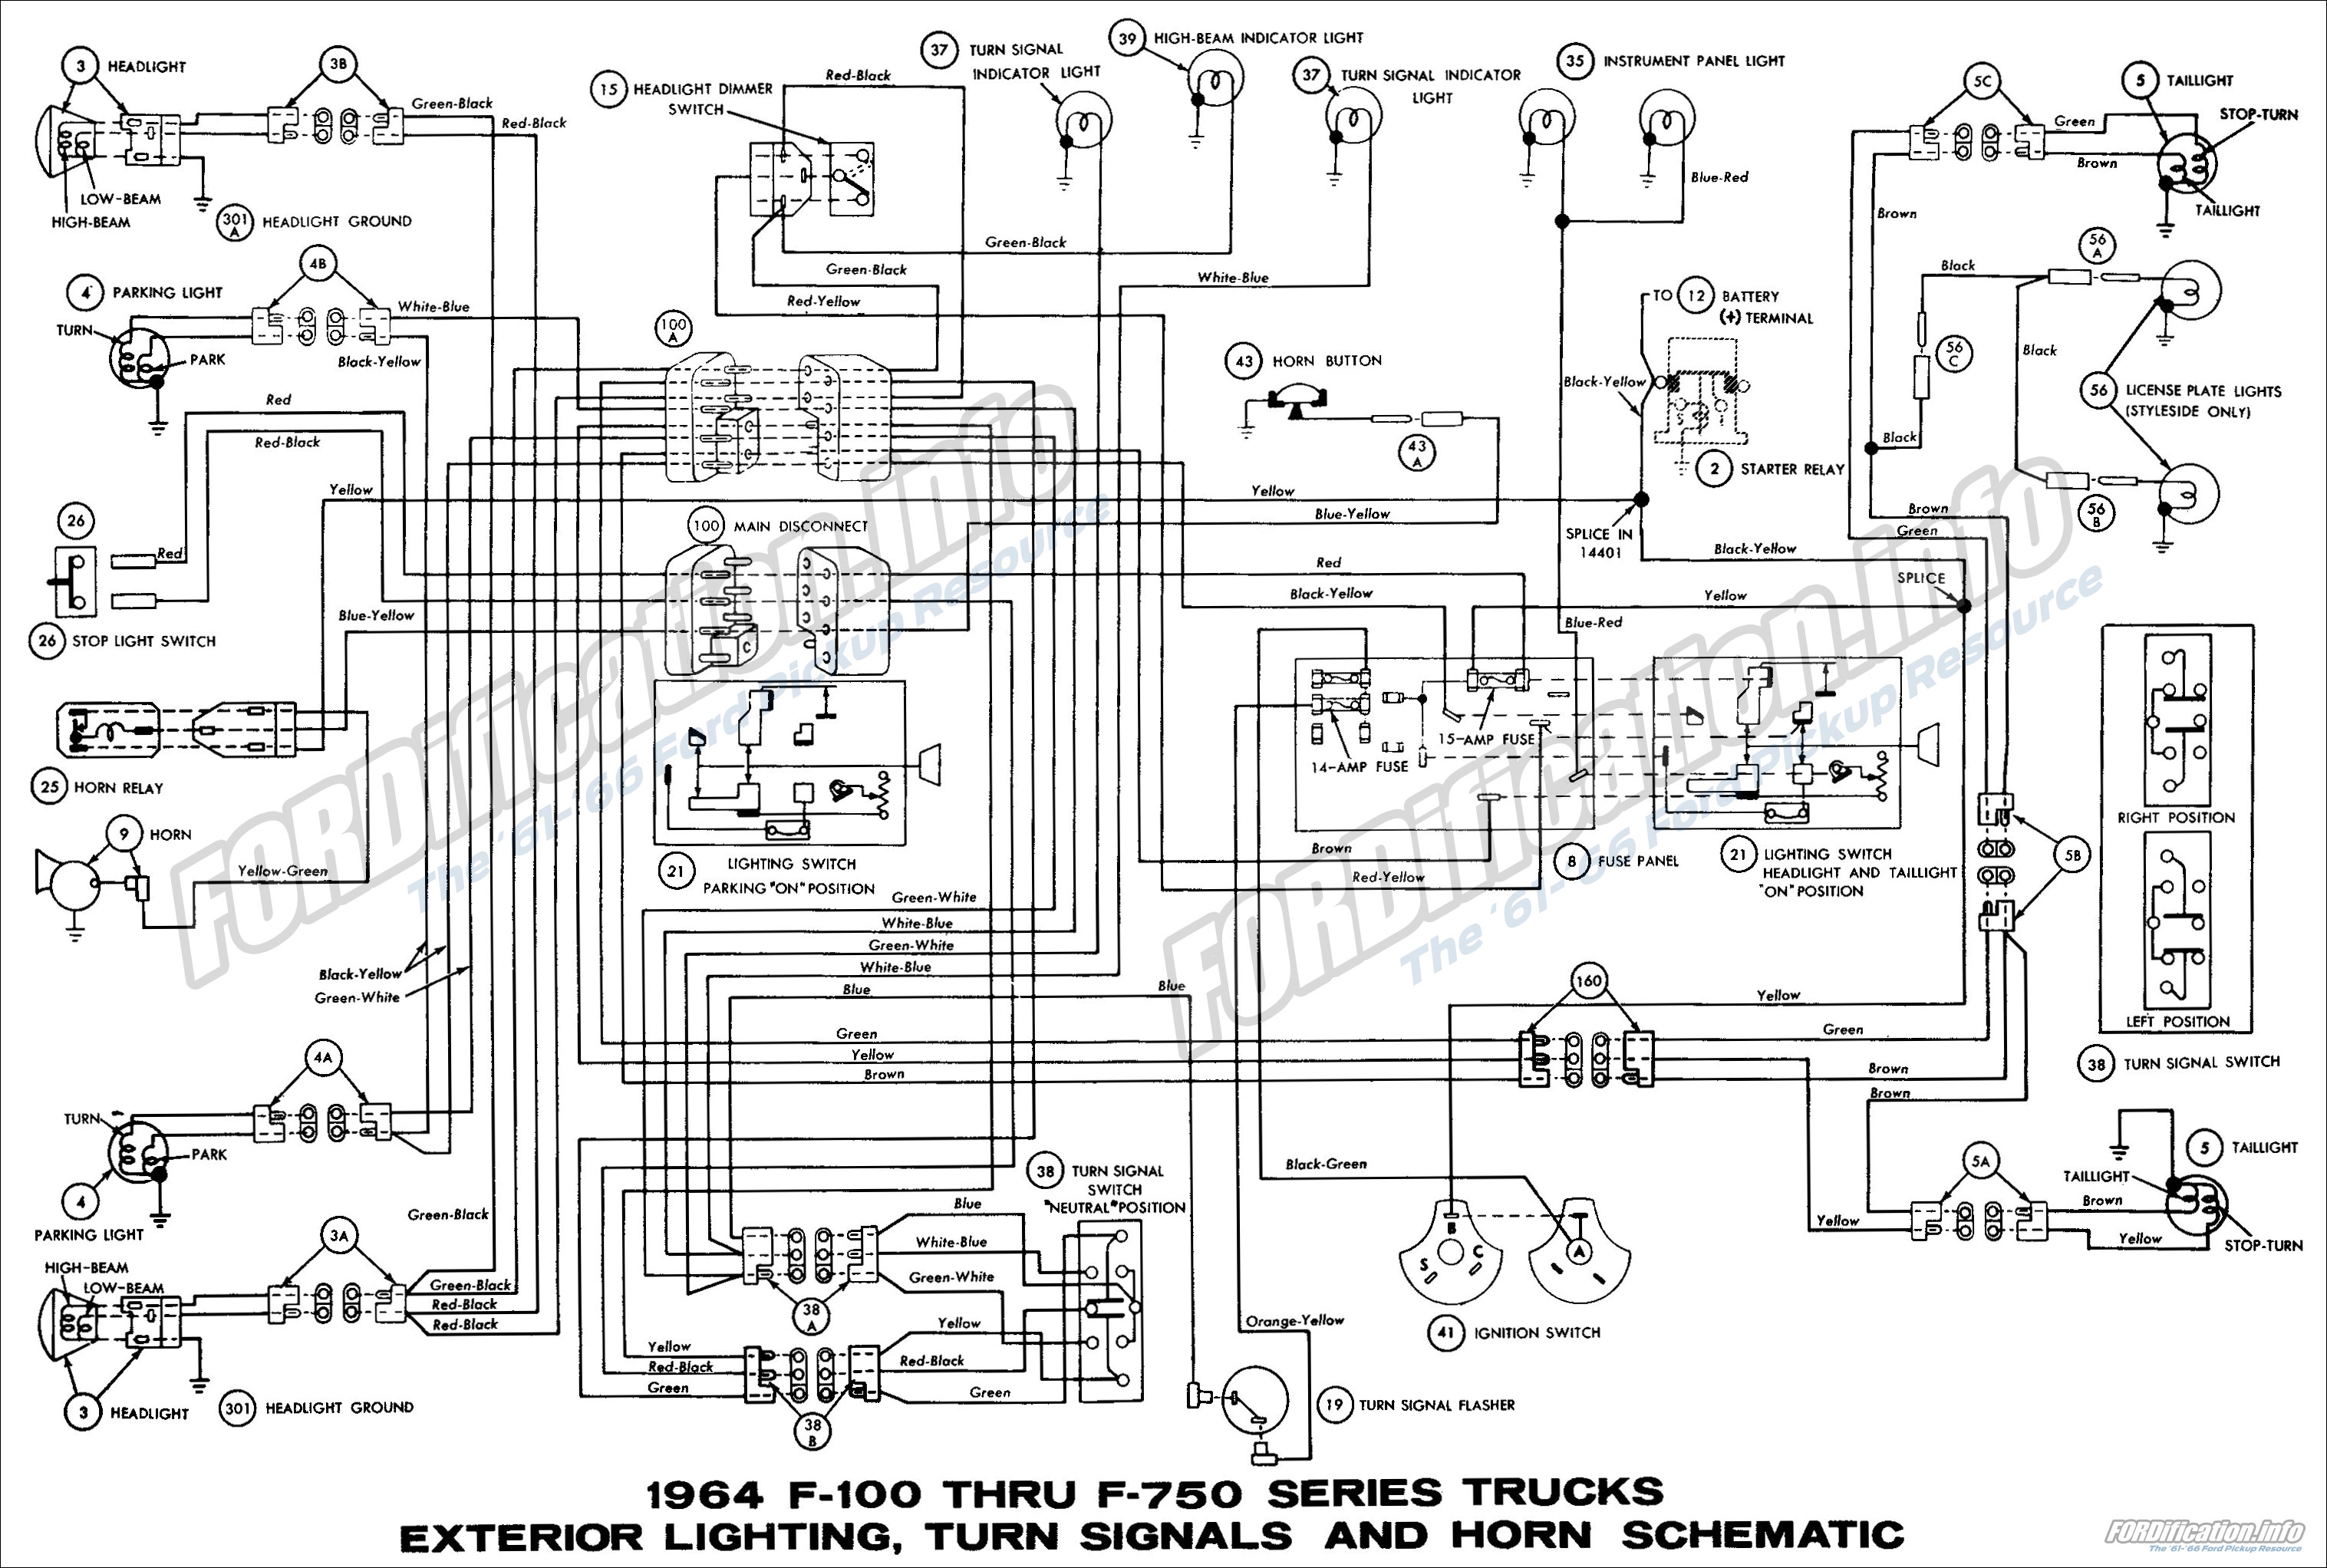 [DIAGRAM_4FR]  66 F100 Wiring Diagram Band Wiring Harness For 79 -  haji-bolot.the-damboel-27.florimunt.fr | 1966 Ford F100 Blinker Switch Wiring |  | Wiring Diagram and Schematics